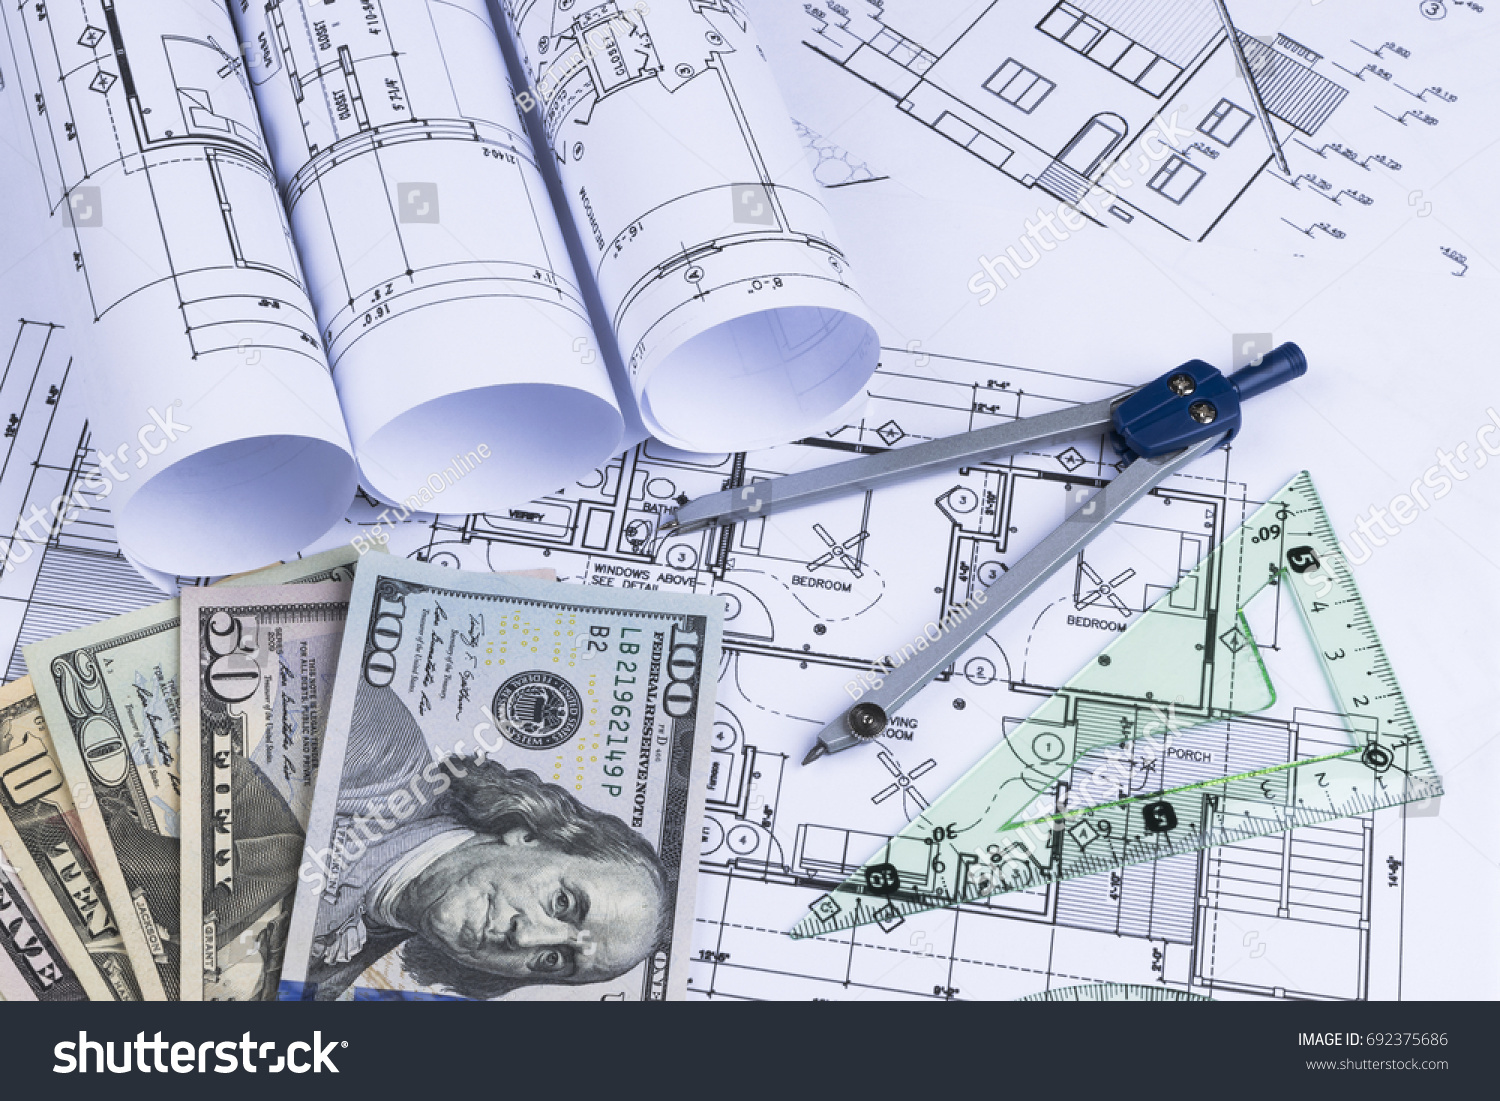 Blueprint architect money symbolic photo financing stock photo a blueprint of an architect with money symbolic photo for financing and planning of a malvernweather Gallery